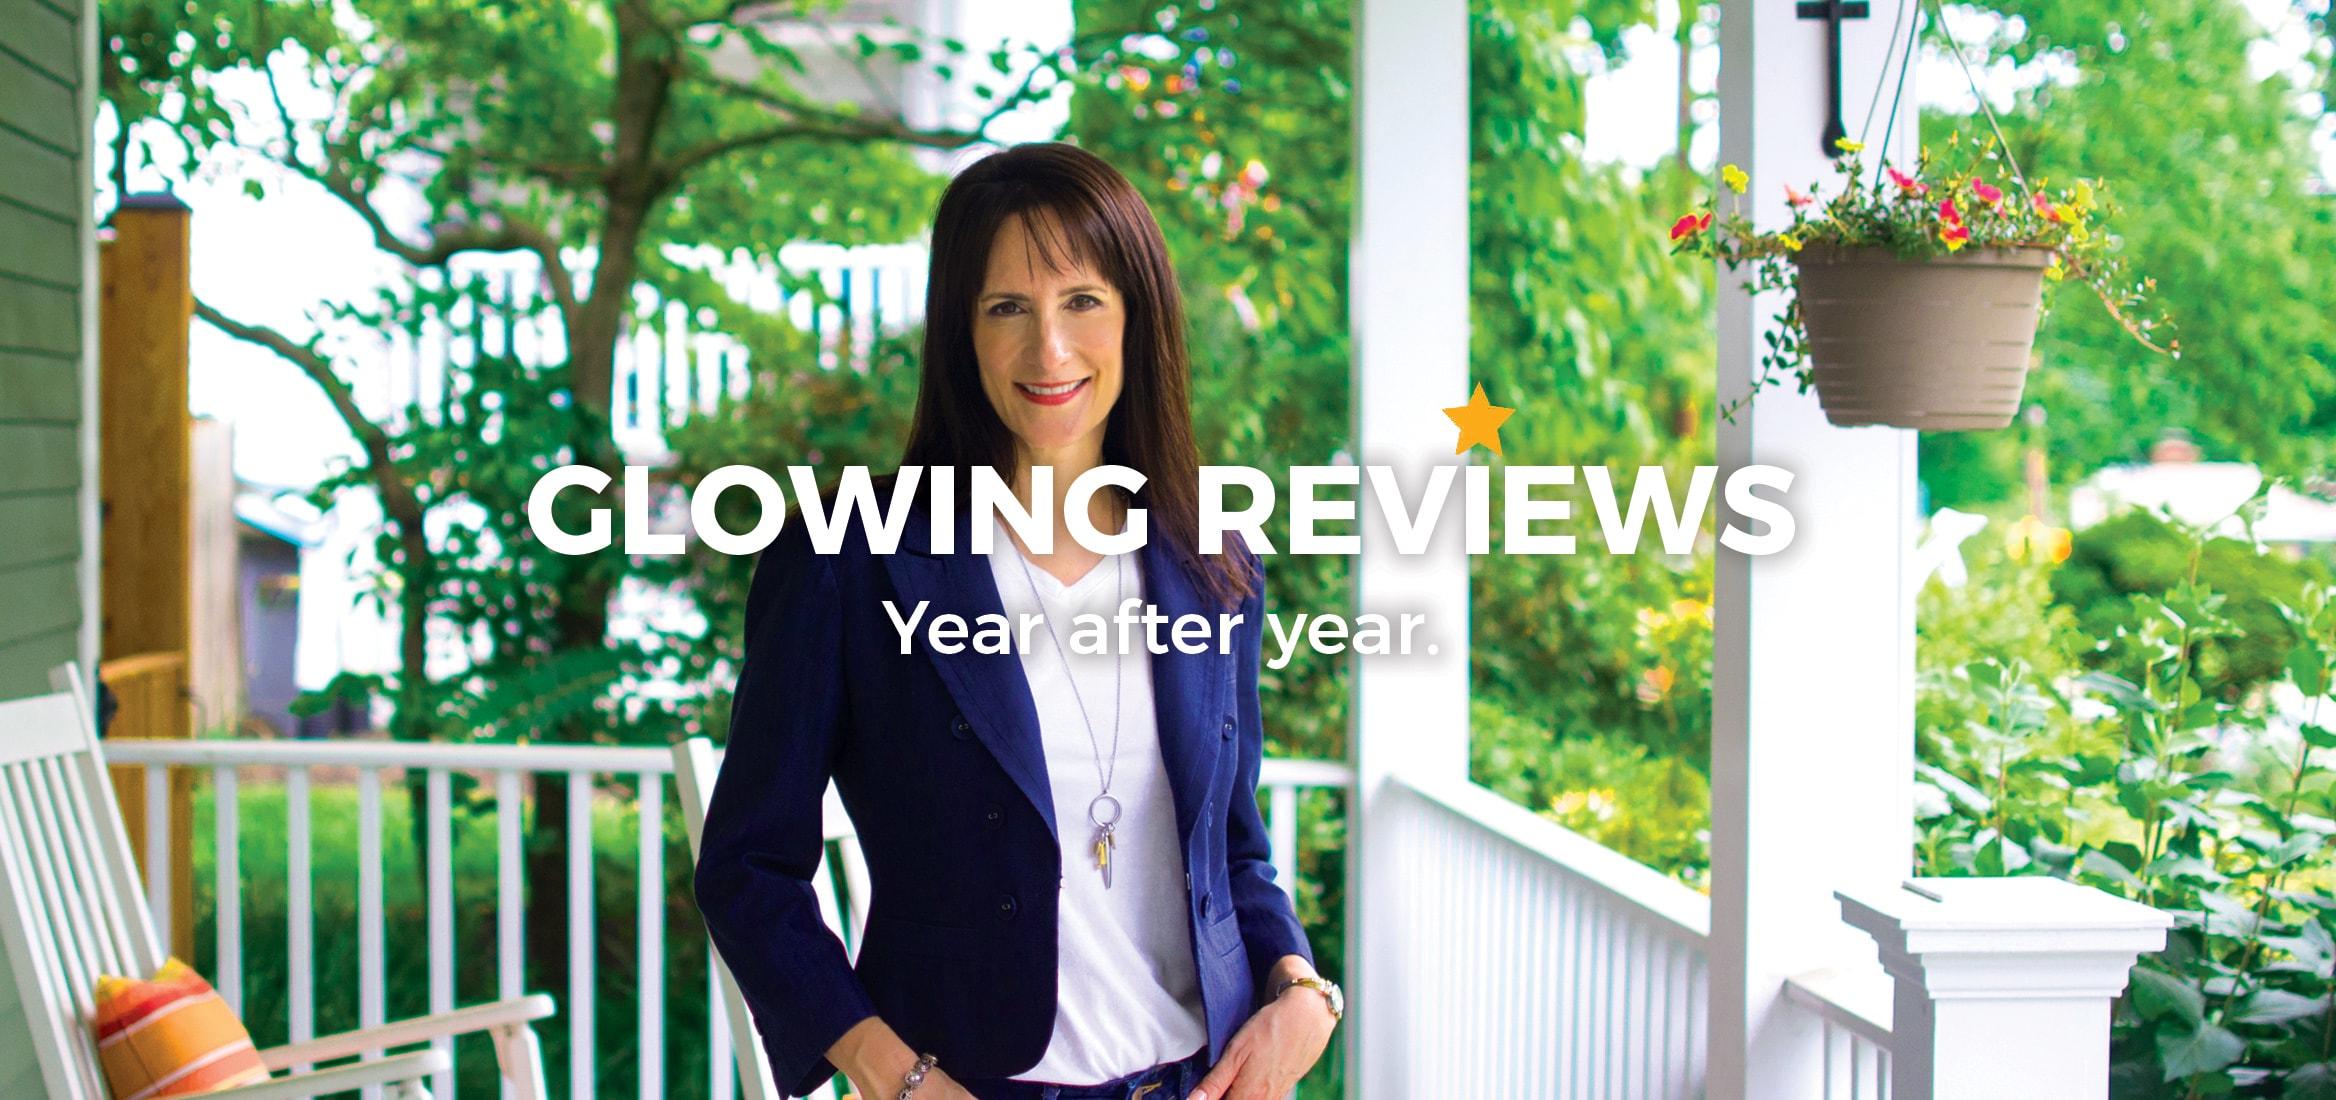 Top Arlington Virginia realtor five star reviews for Meg Ross